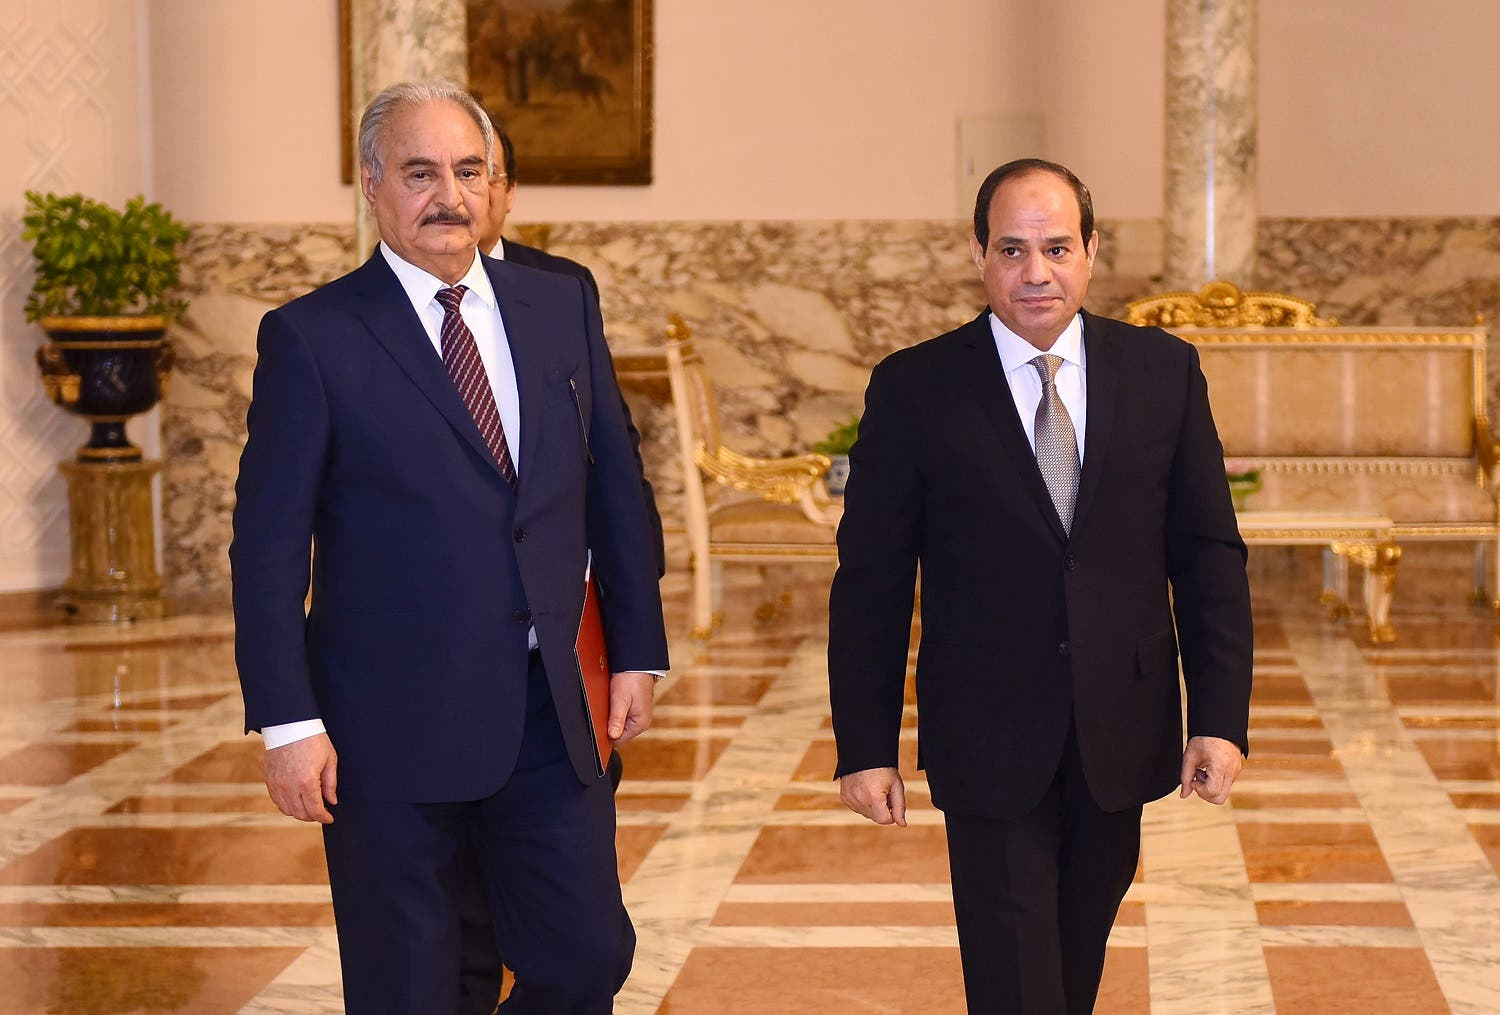 Commander of the Libyan National Army (LNA) Khalifa Haftar visited Egyptian President Abdel Fattah el-Sisi in Cairo in April. (File photo: AFP)